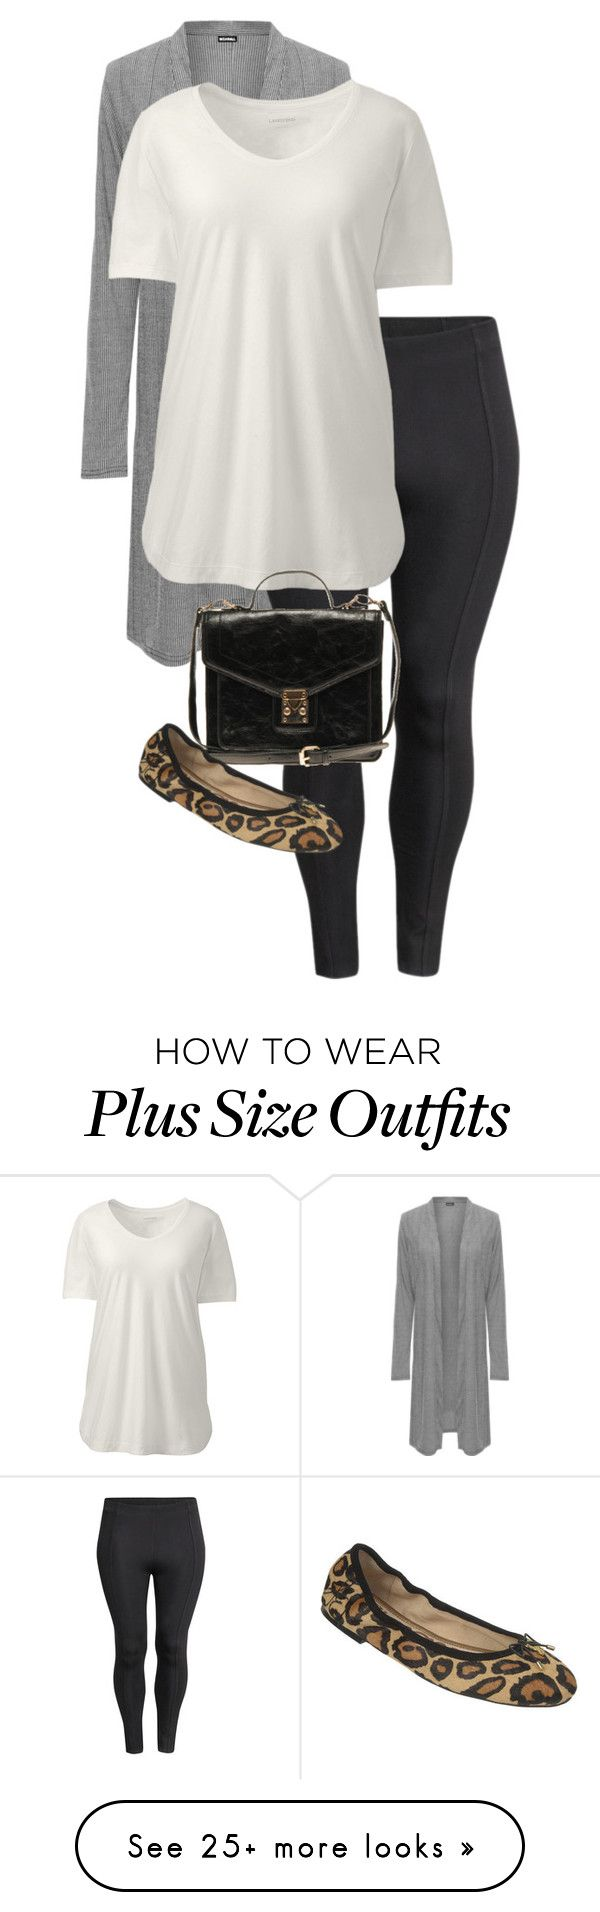 """Untitled #1925"" by coolchick1630 on Polyvore featuring WearAll, H&M, Lands' End, ALDO, Sam Edelman and plus size clothing"